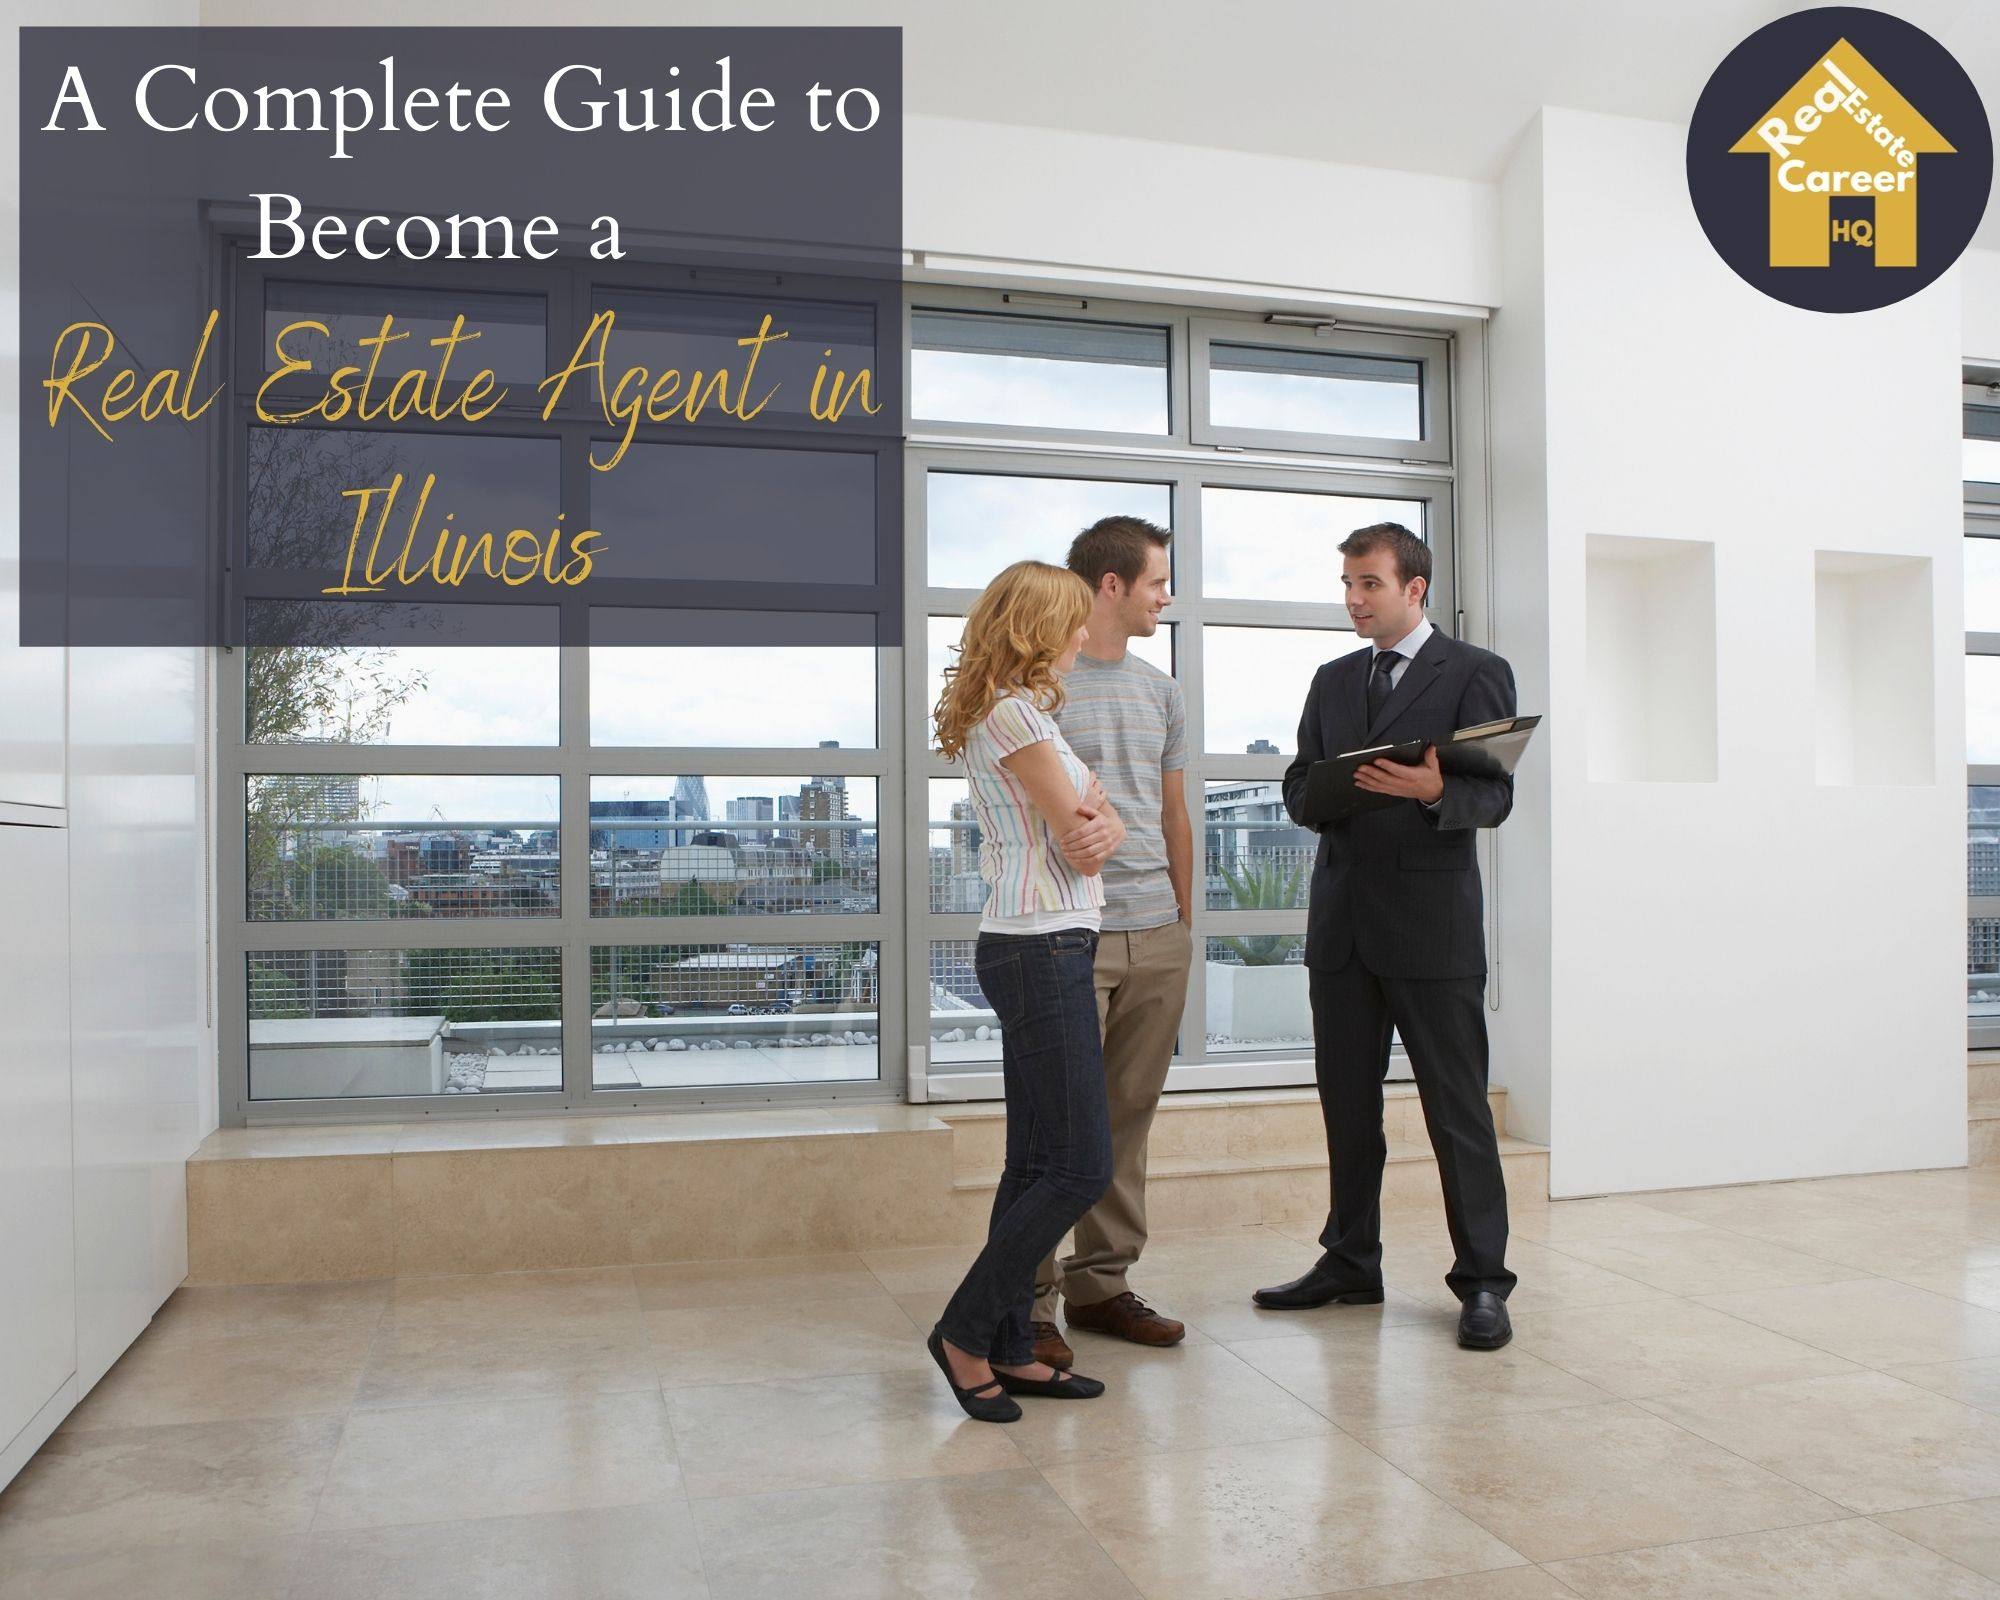 How to Become a Real Estate Agent in Illinois?